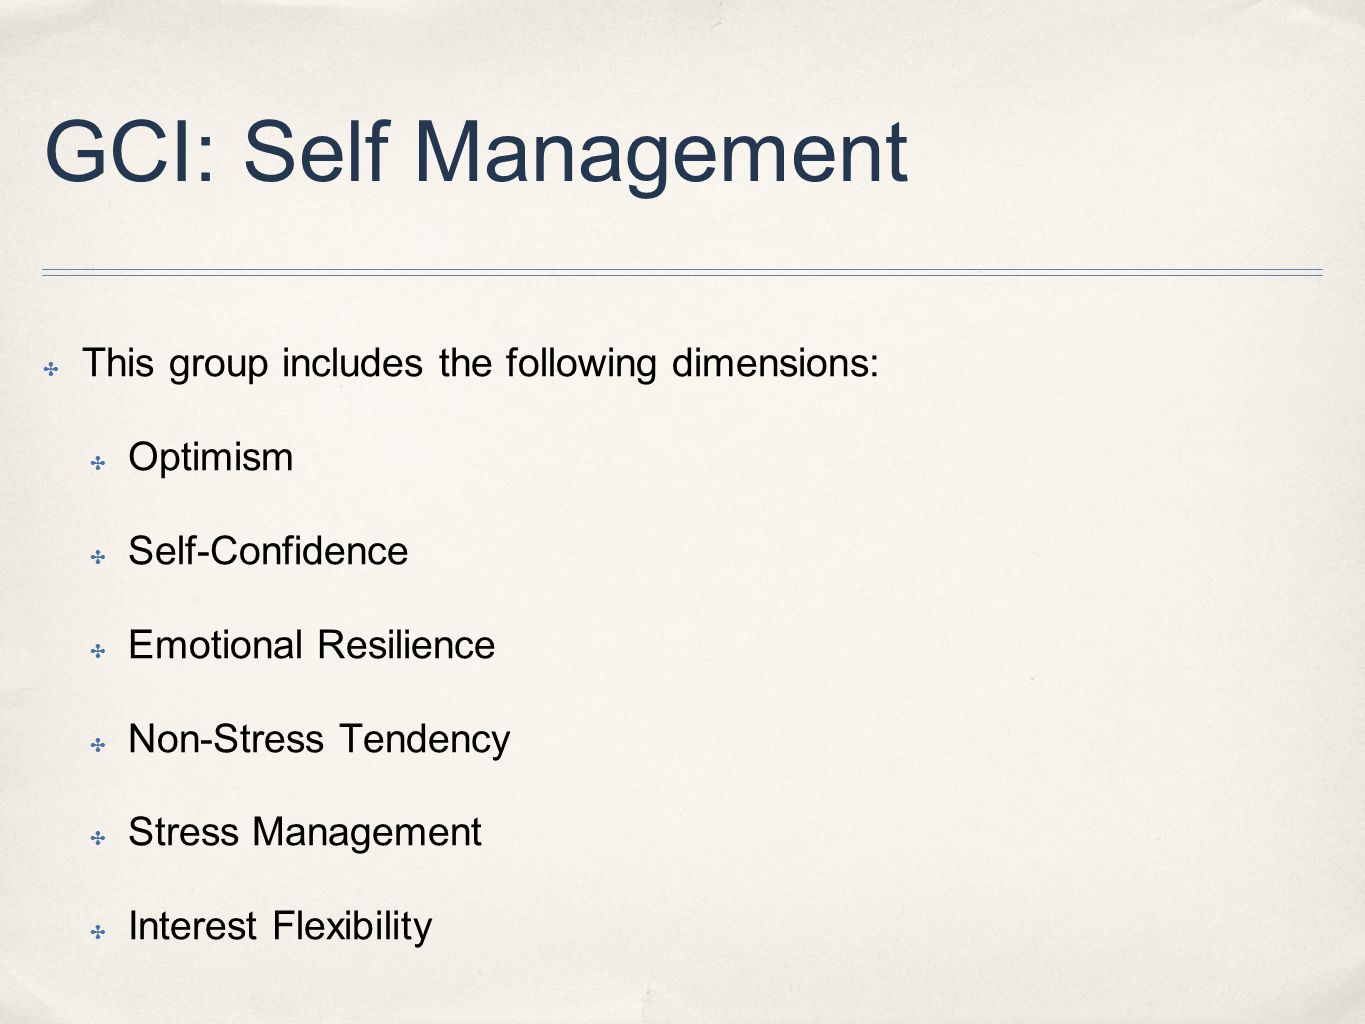 GCI: Self Management ✤ This group includes the following dimensions: ✤ Optimism ✤ Self-Confidence ✤ Emotional Resilience ✤ Non-Stress Tendency ✤ Stress Management ✤ Interest Flexibility